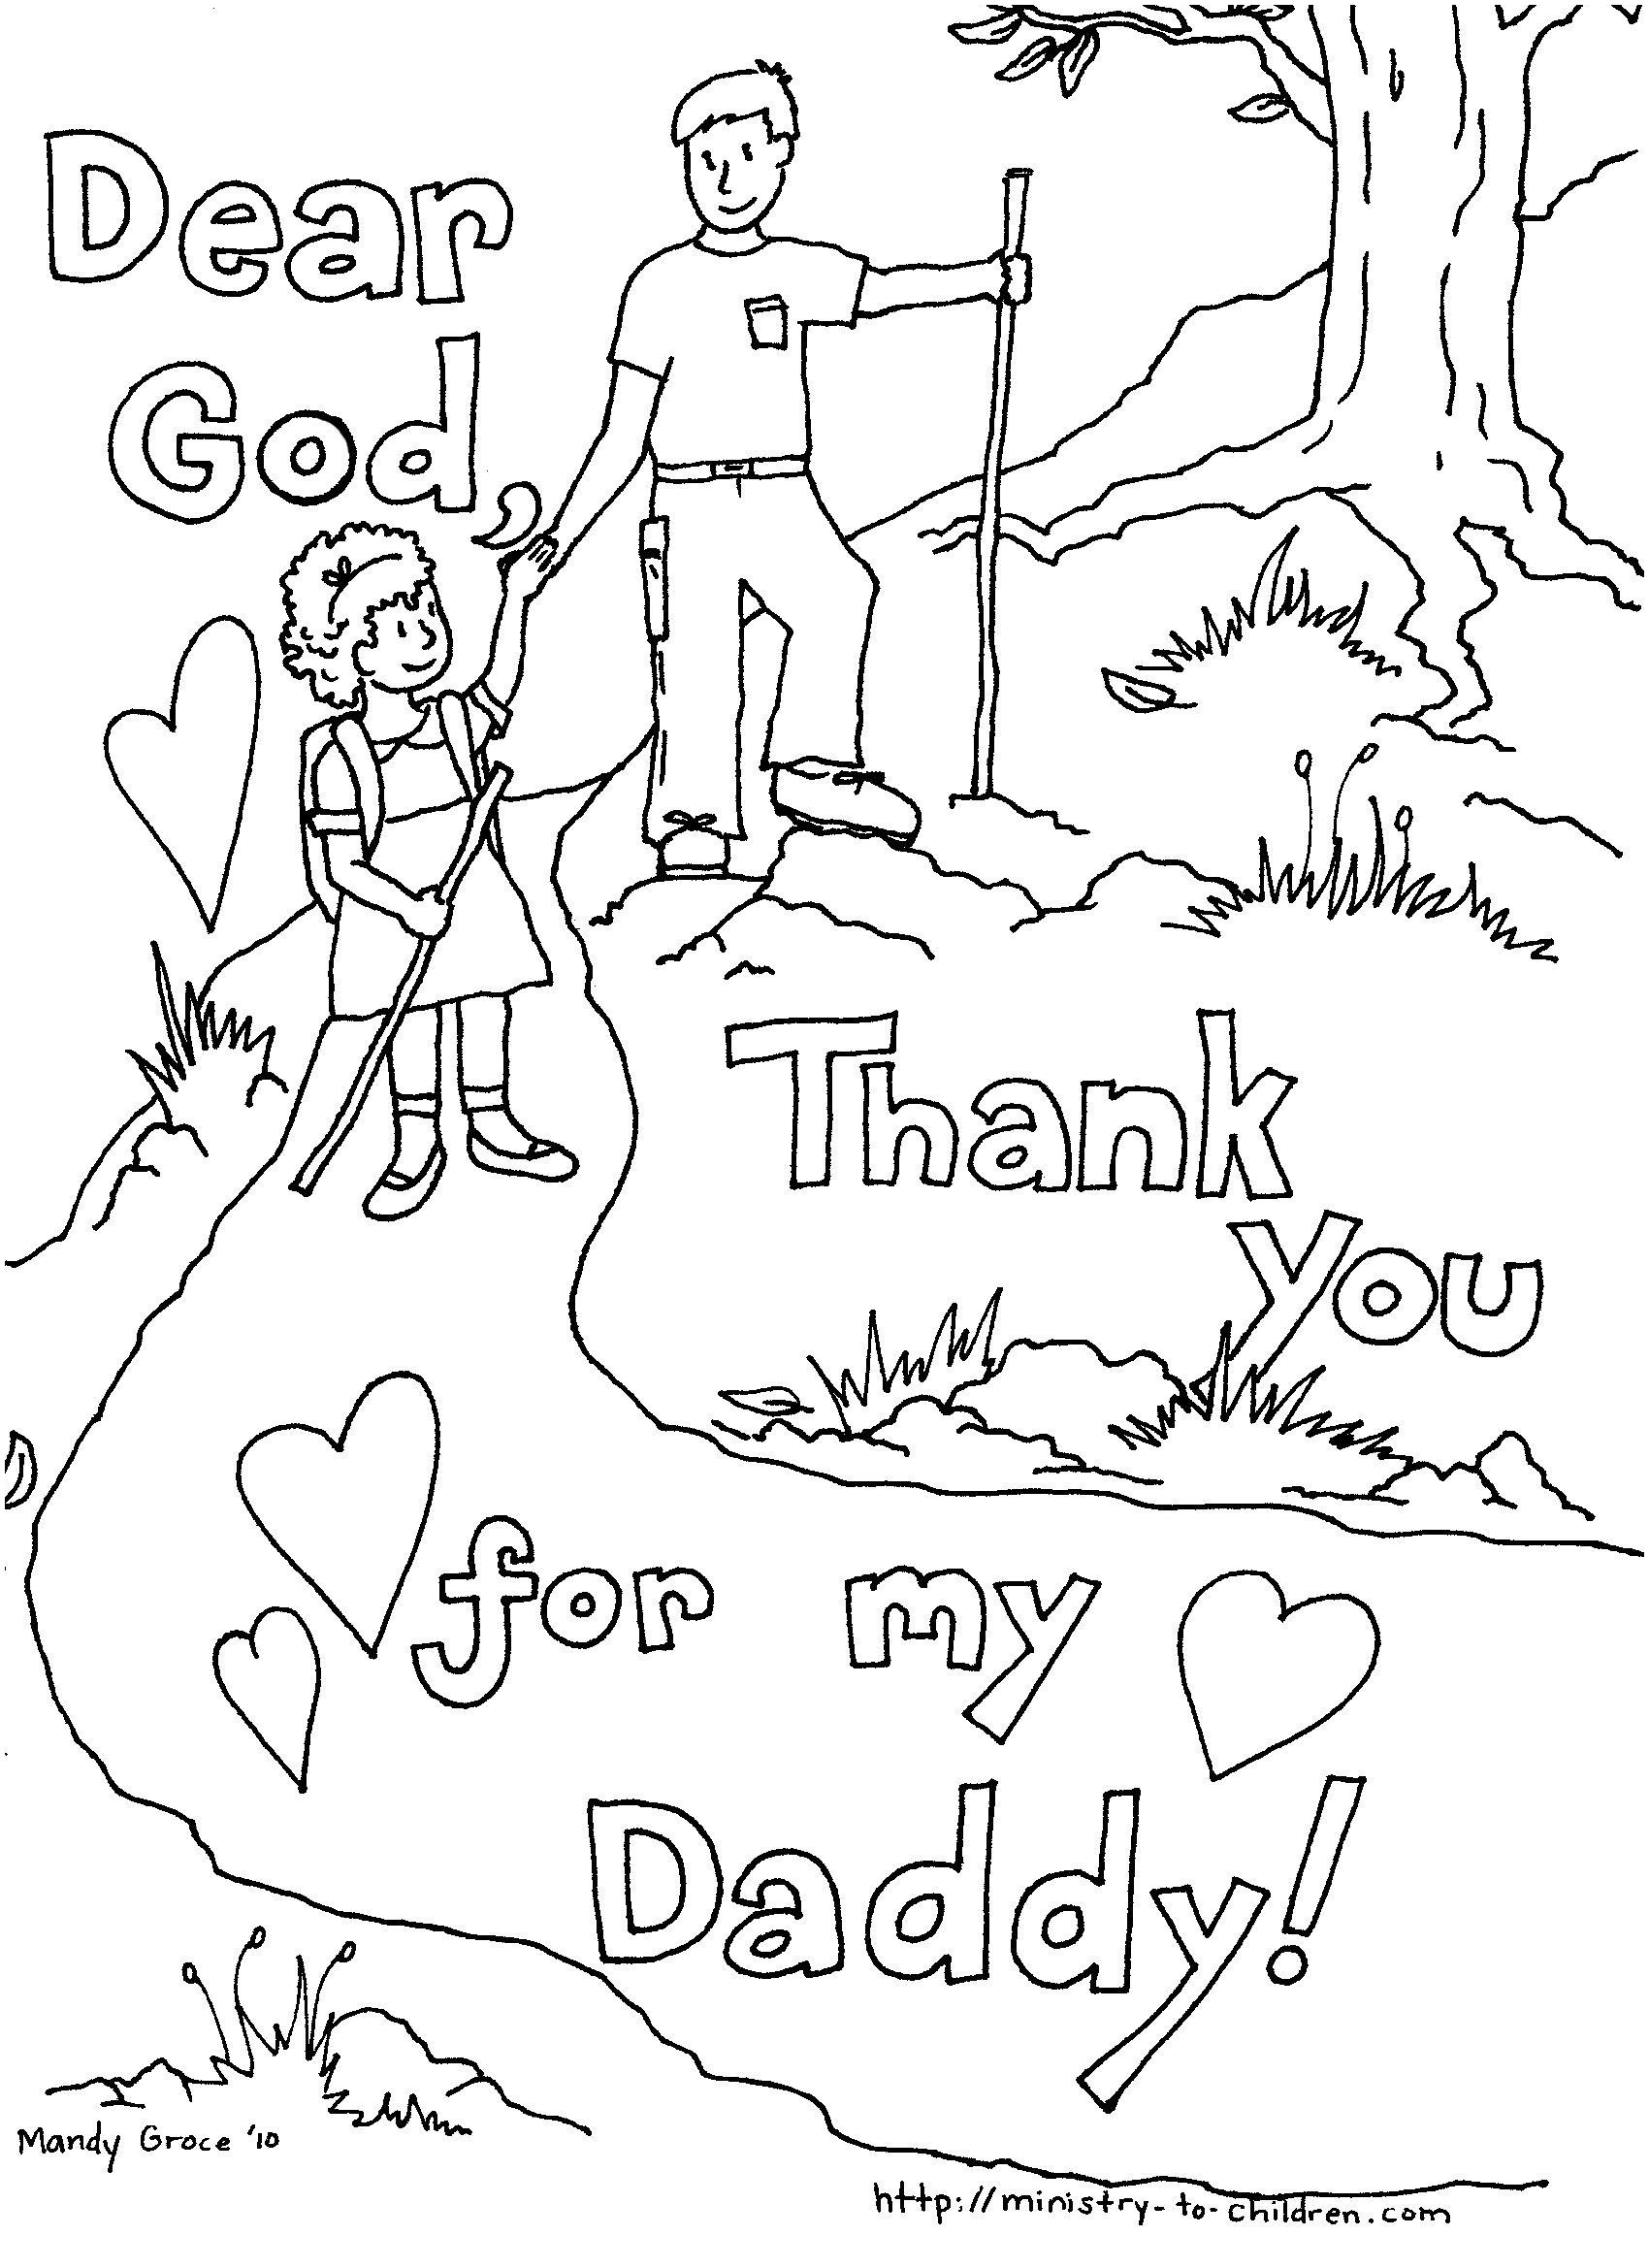 fathers day coloring pages printable Download-Link Coloring Pages New Fathers Day Coloring Pages to Print Free Free Coloring Pages 11-m